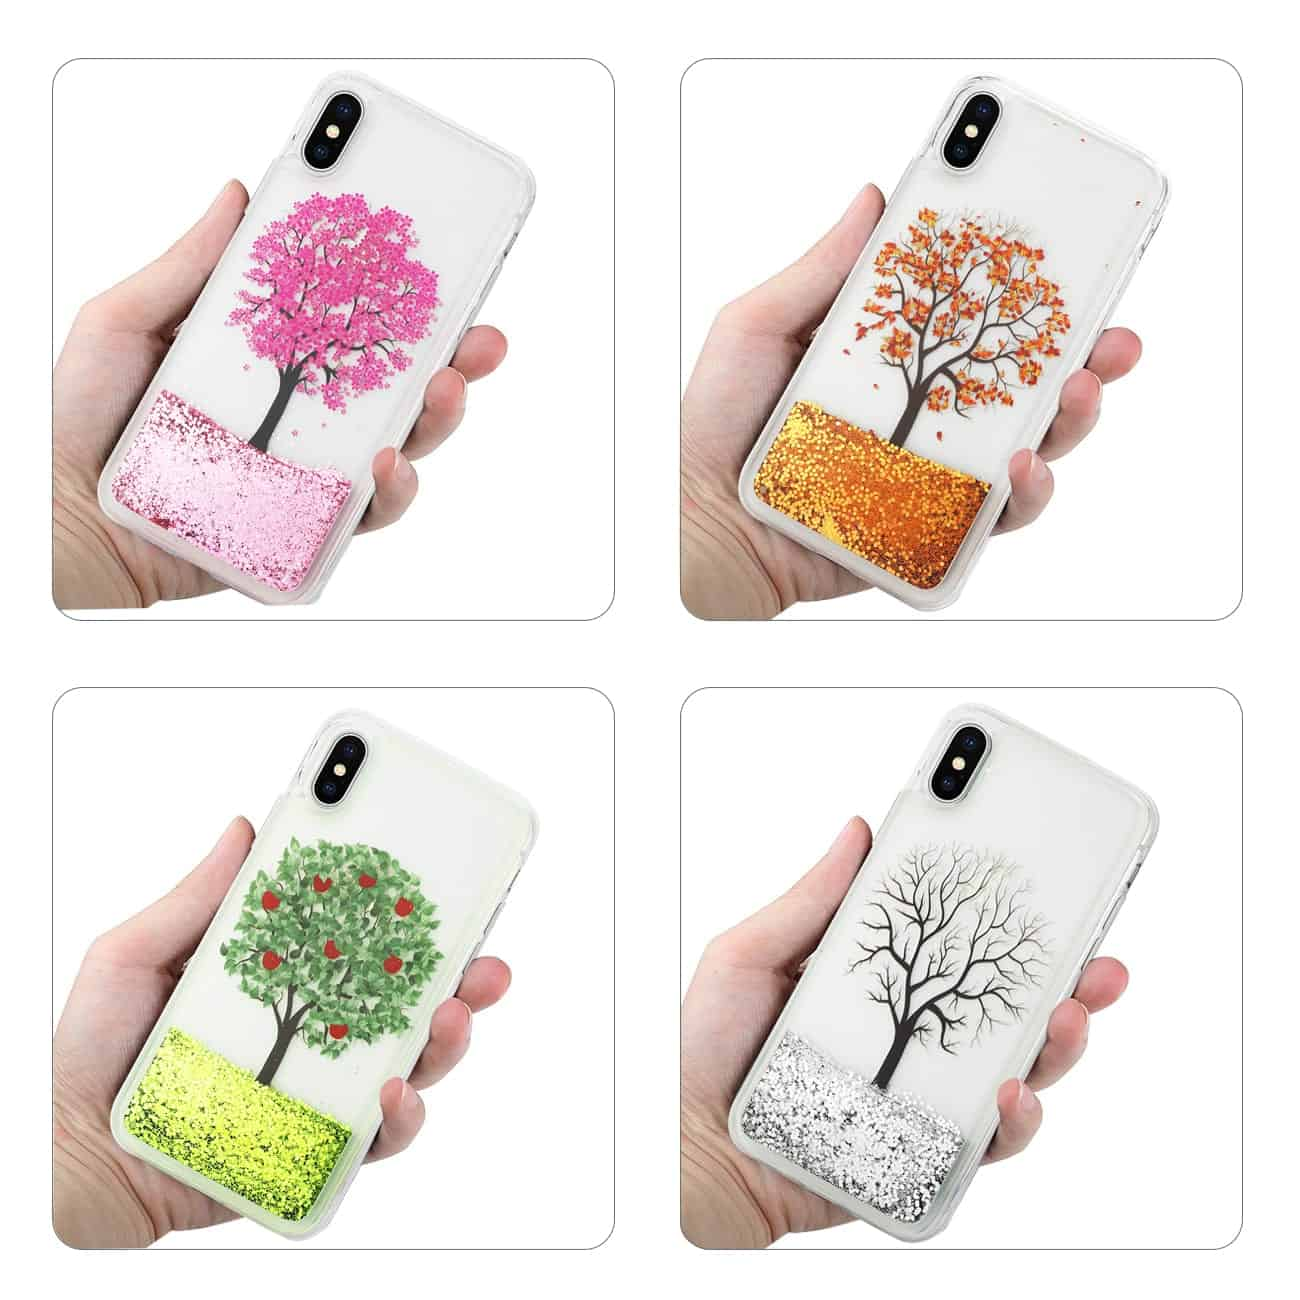 iPhone X Clear Bumper Cases(4pcs) with Tree Design In Four Seasonal Colors